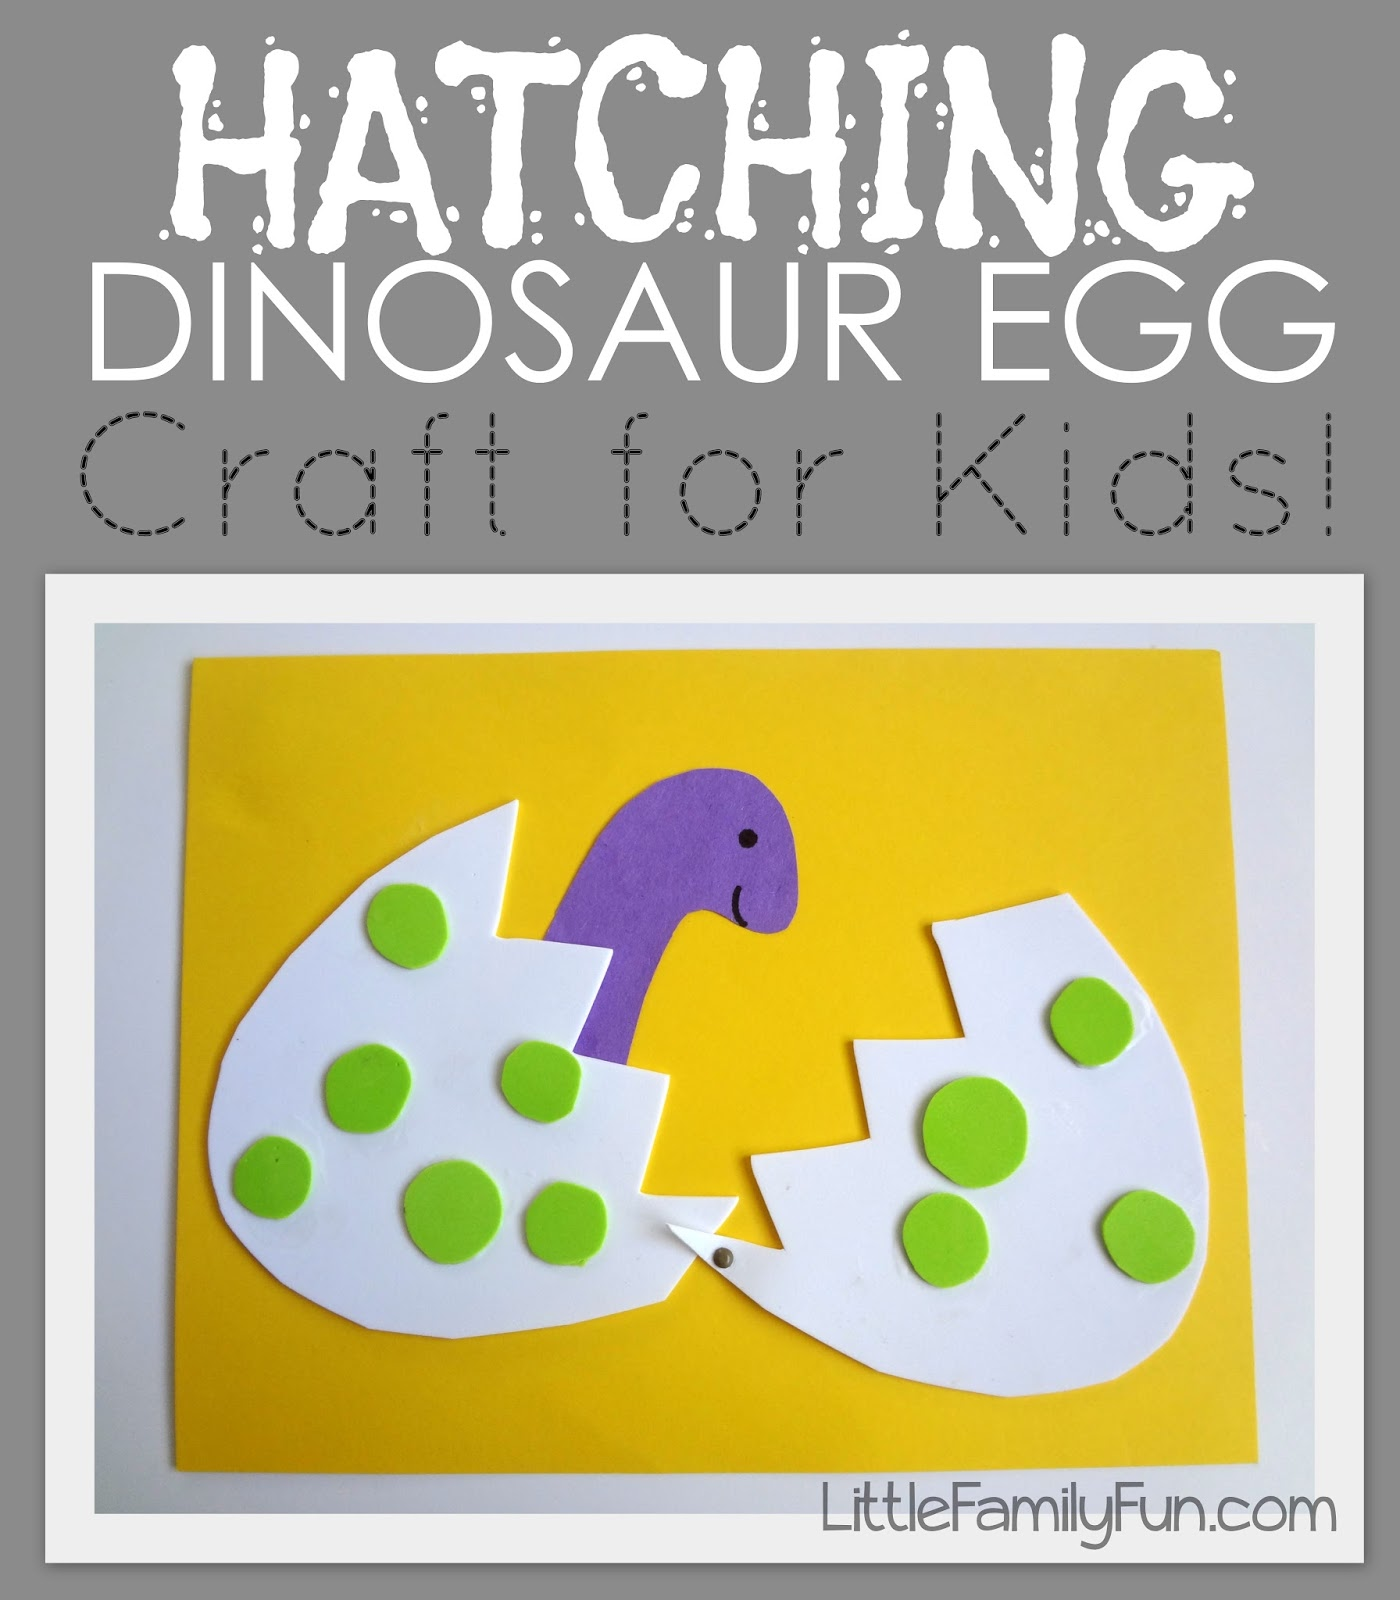 Little family fun hatching dinosaur egg craft for Dinosaur crafts for toddlers